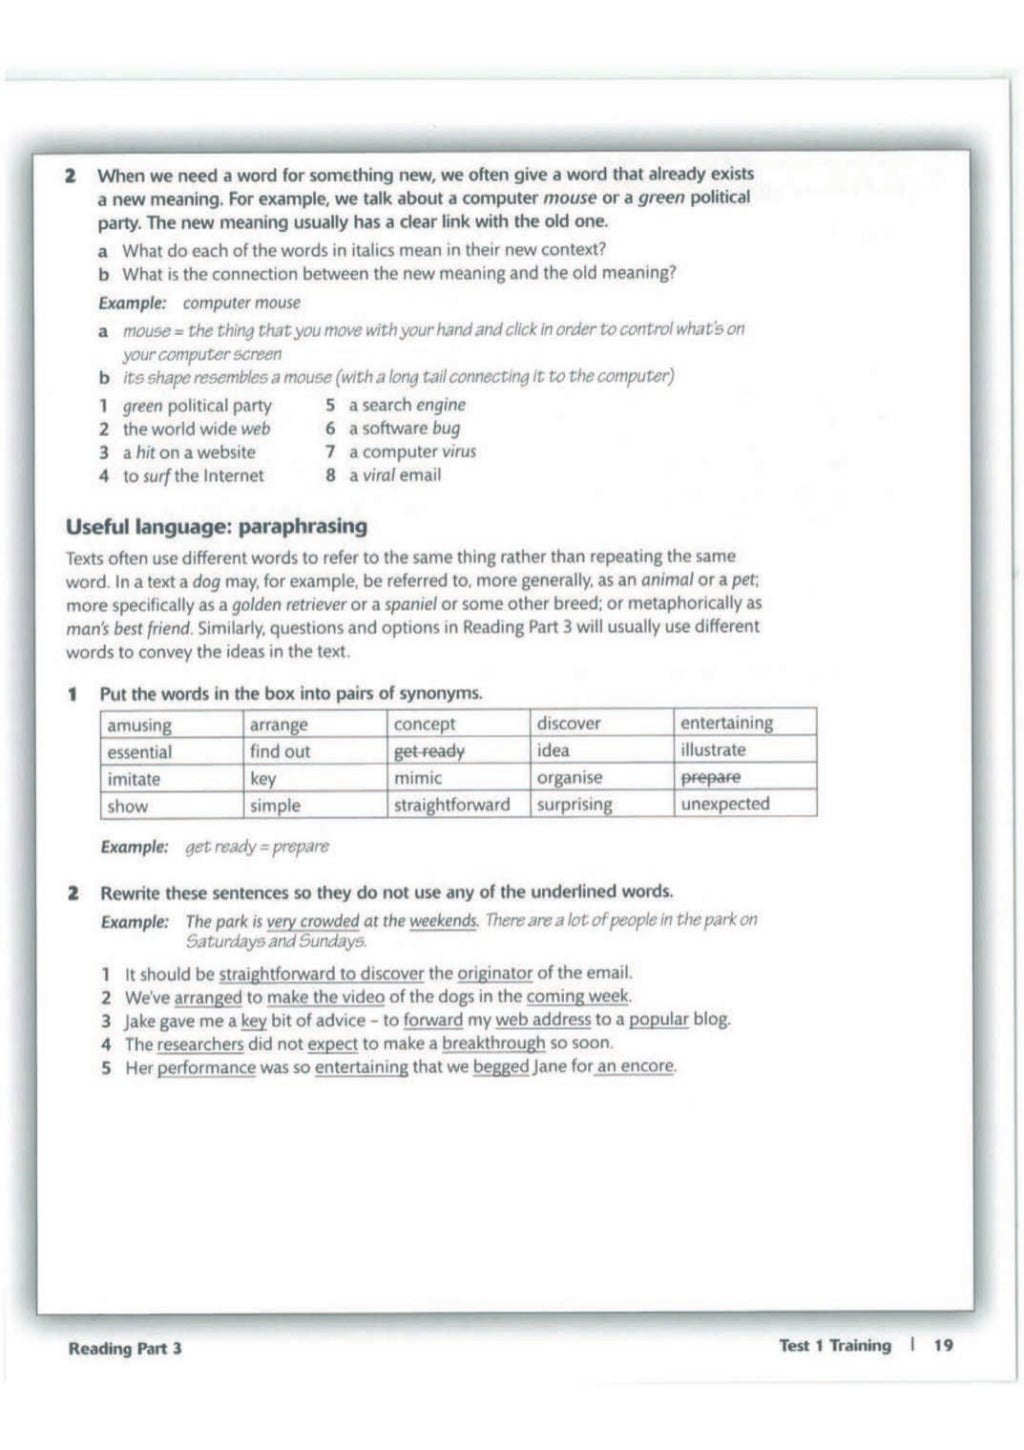 Advanced trainer 6 practice tests with answers book4joy (1) page 20